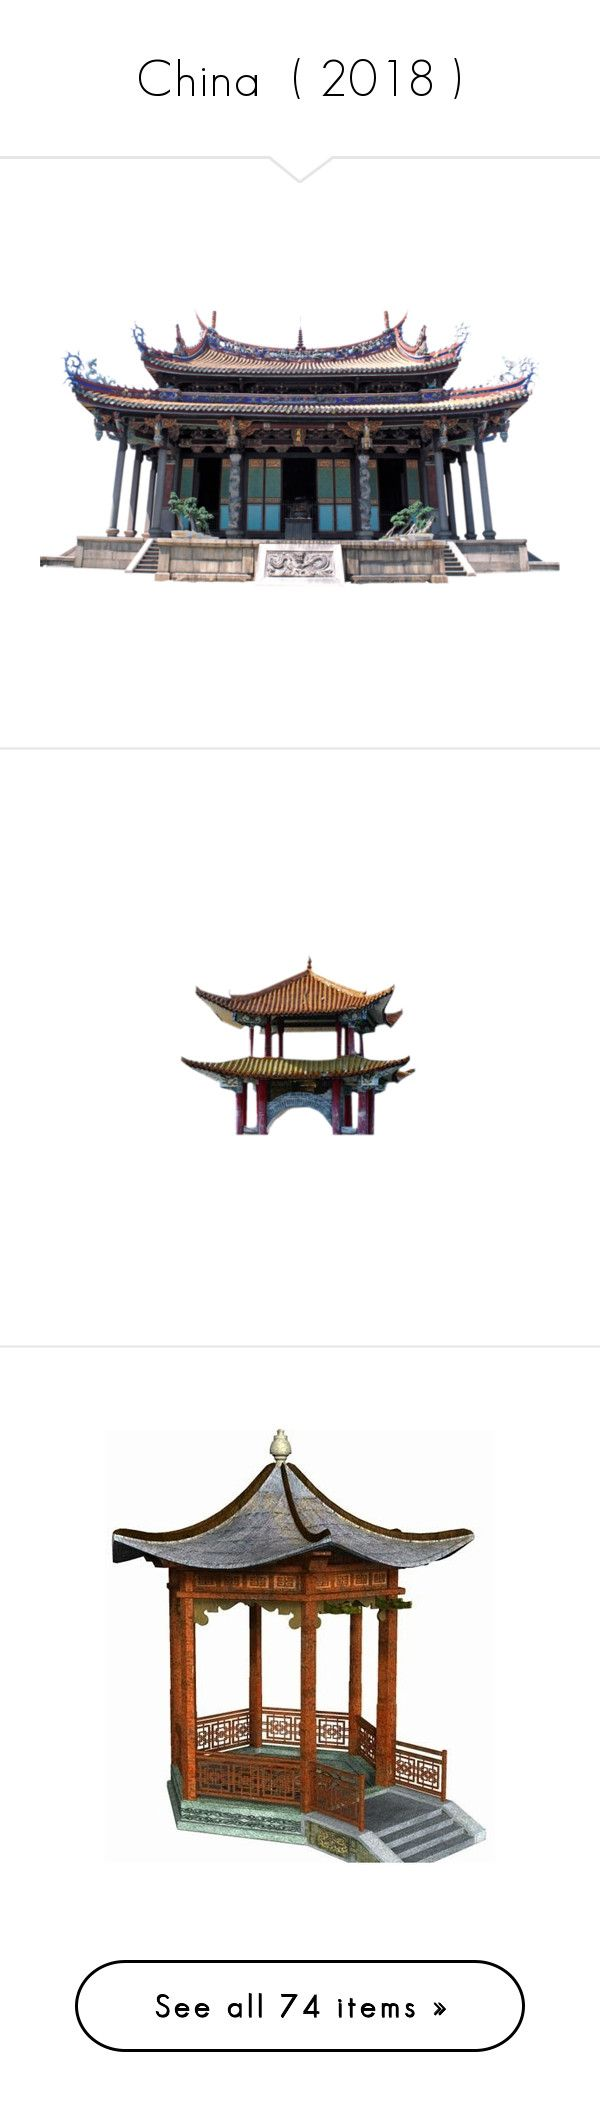 """China  ( 2018 )"" by selene-cinzia ❤ liked on Polyvore featuring asian, oriental, tubes, architecture, art, mulan, asia, bridges, backgrounds and faded"